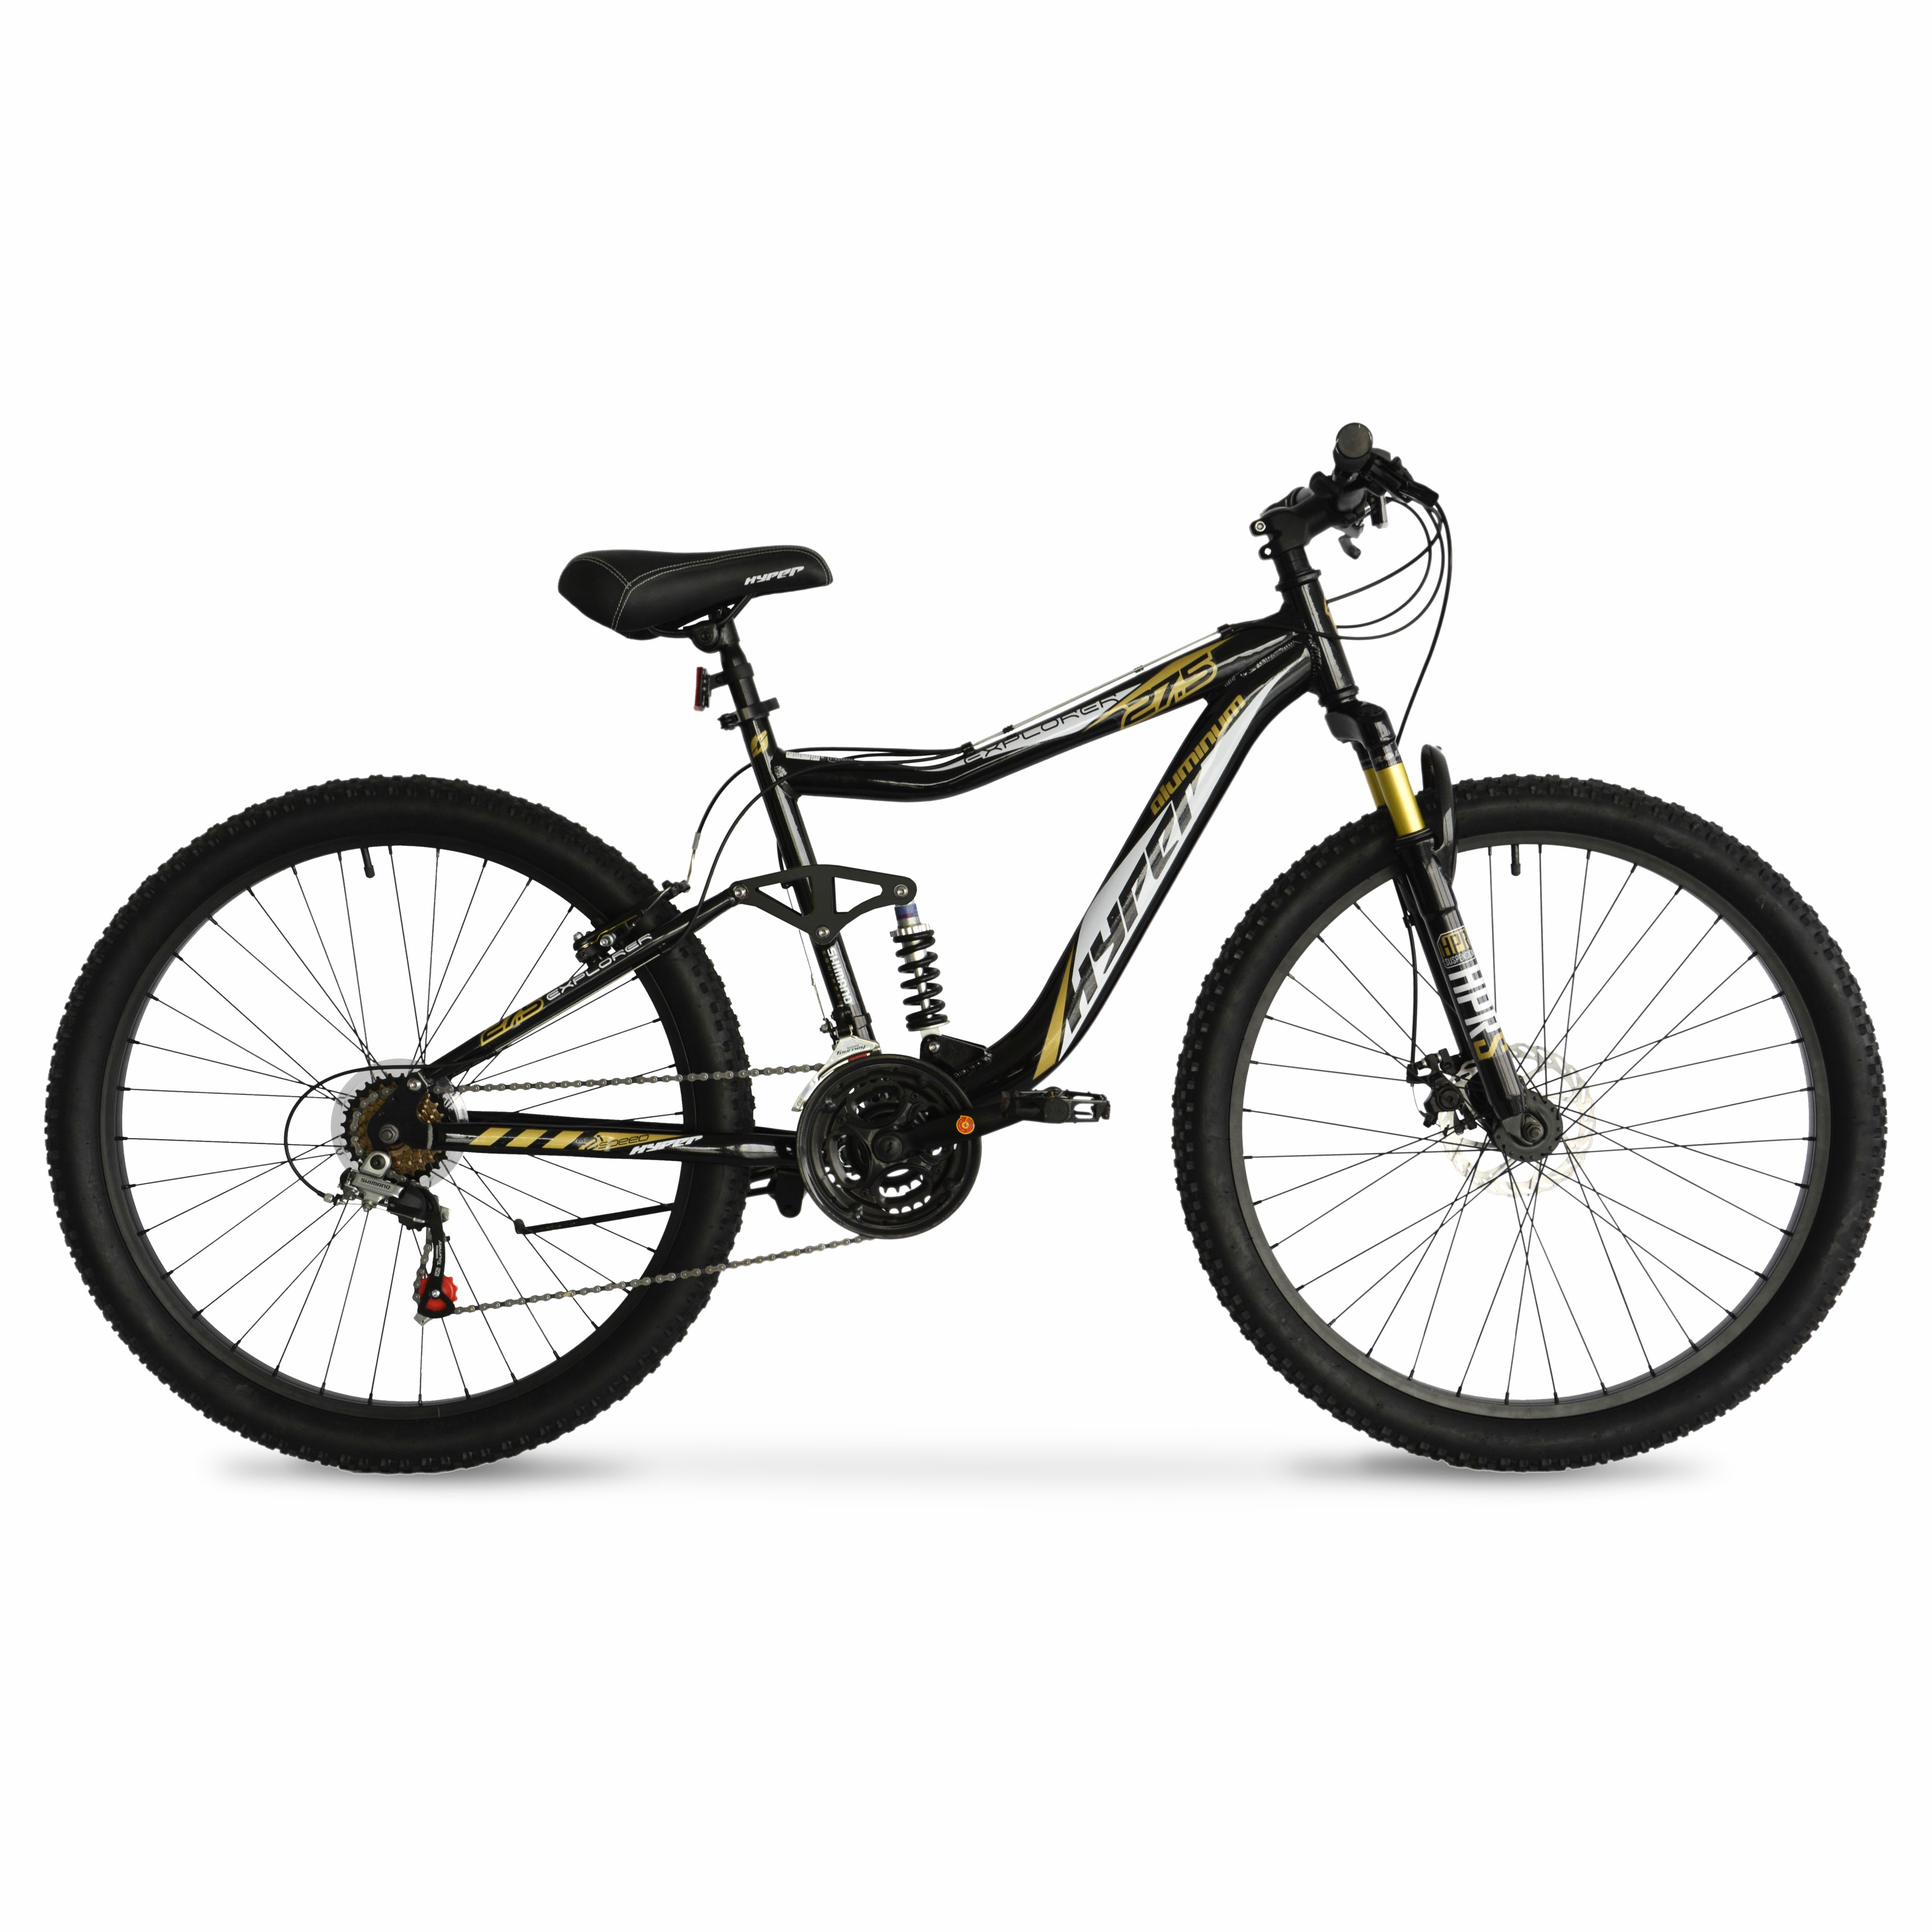 "27.5"" Men's Hyper Explorer Mountain Bike - Aluminum Suspension Frame with Shimano Components!"